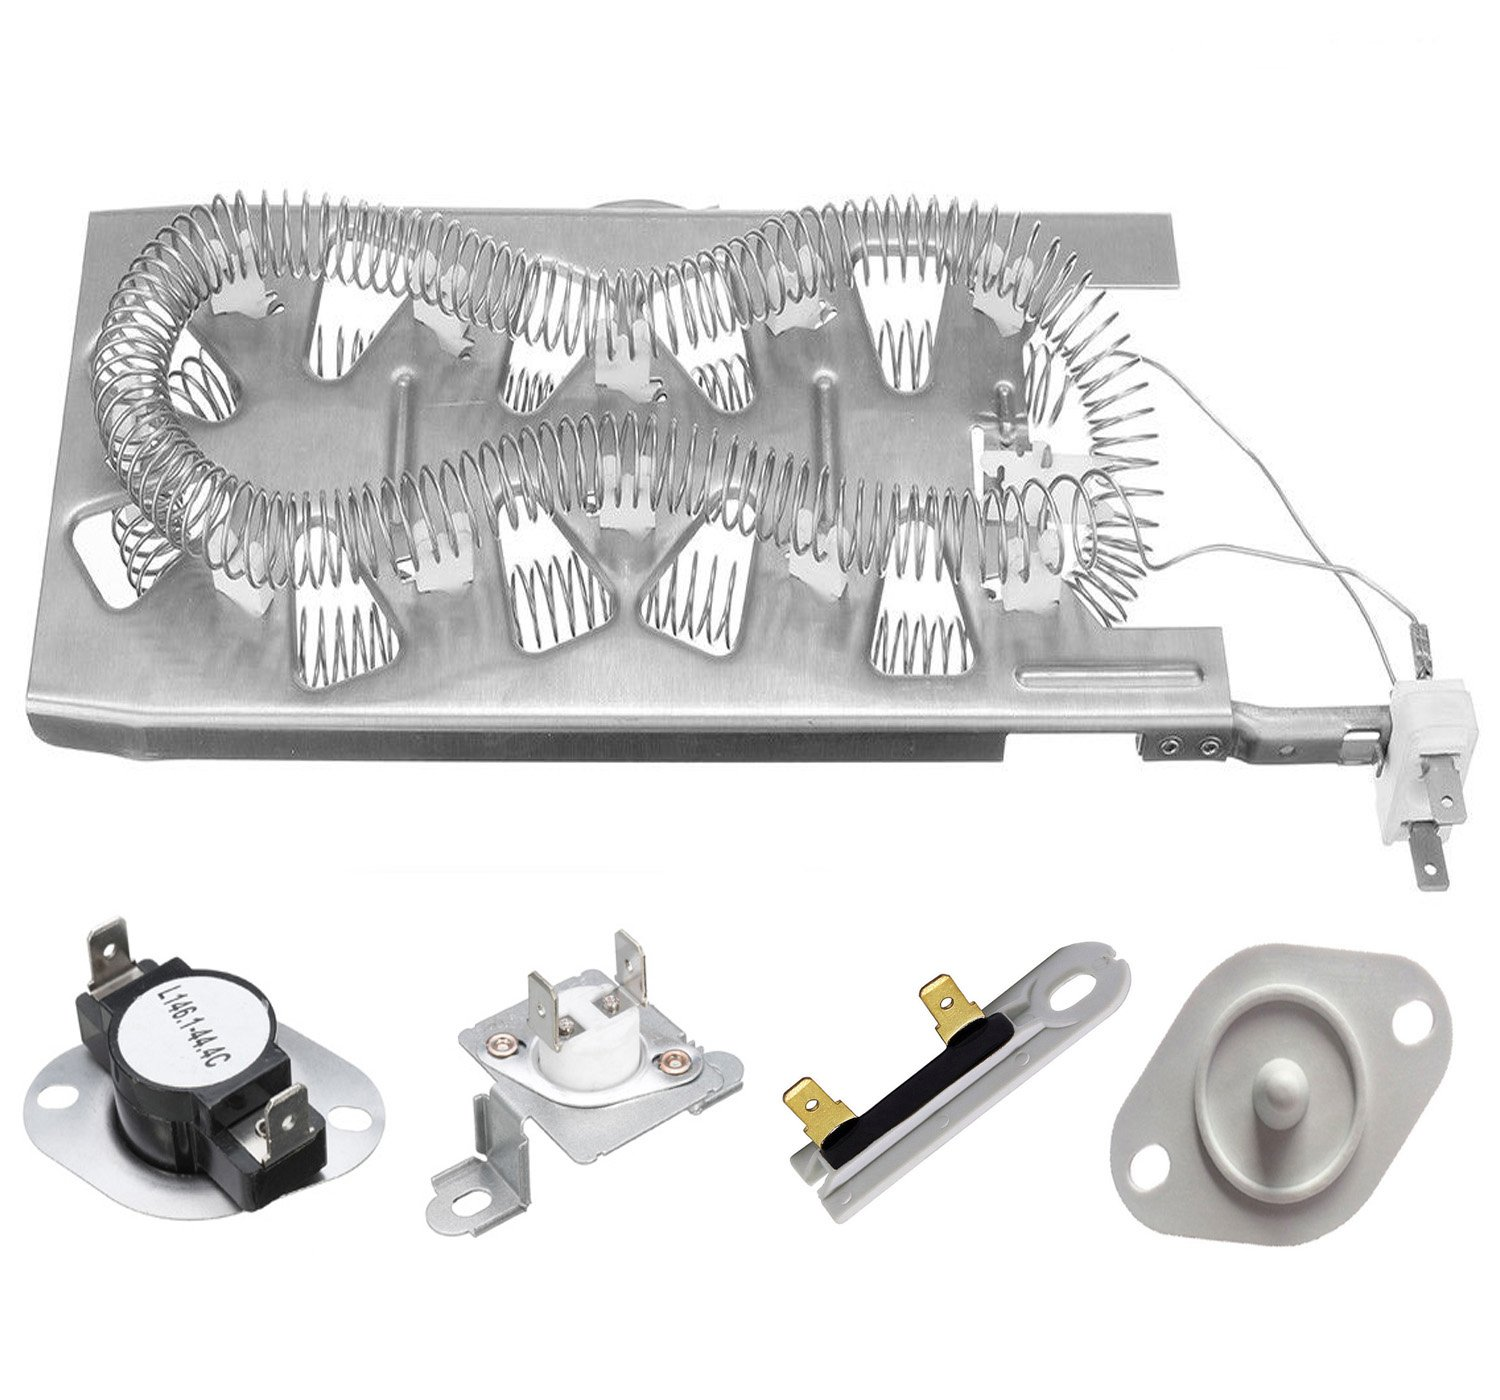 Siwdoy 3387747 & 279973 & 3392519 & 8577274 Duet Dryer Heating Element Thermal Cut Off Kit with Thermistor & Thermal Fuse for Whirlpool